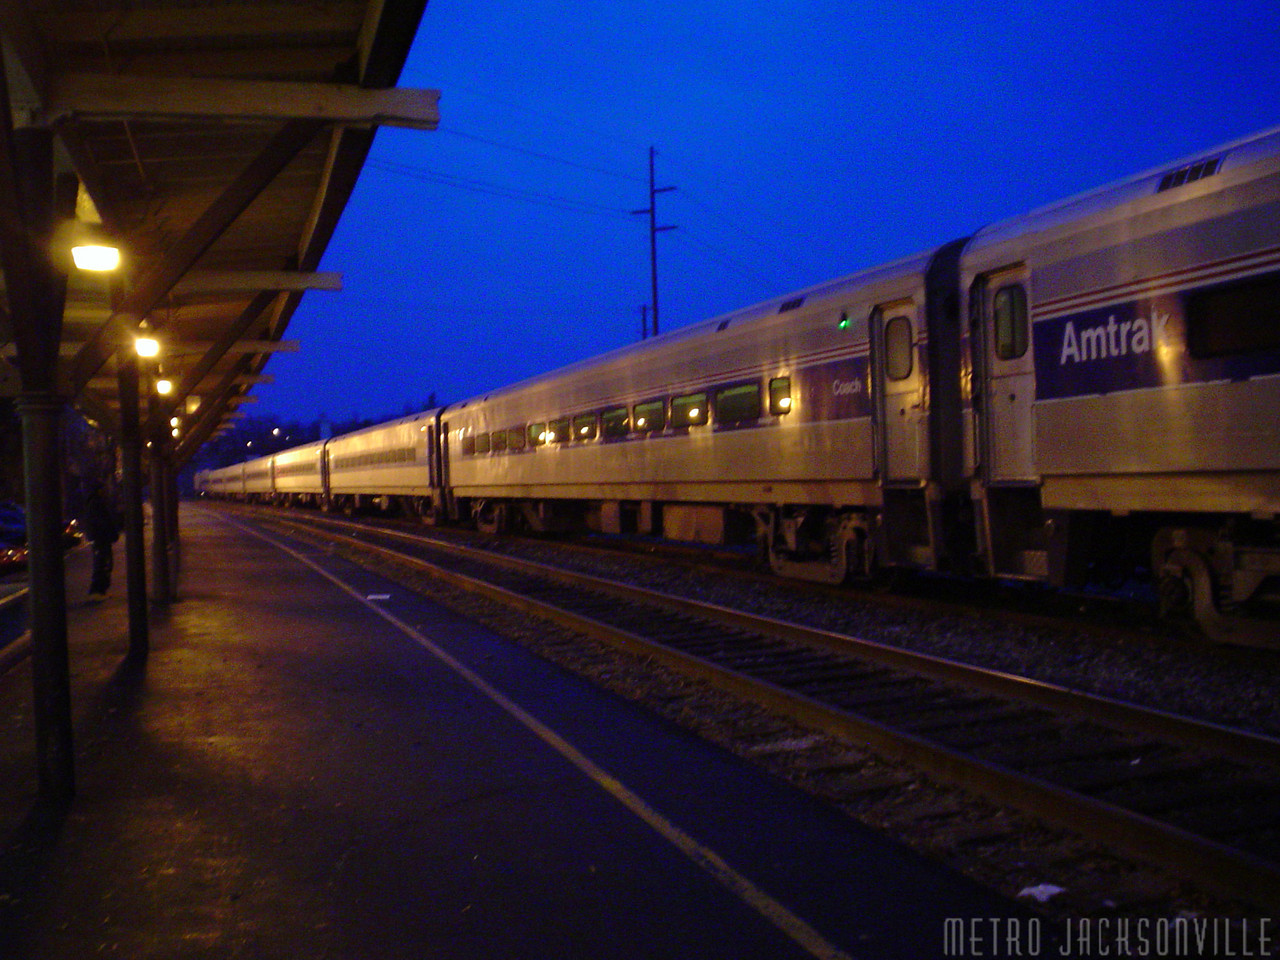 Raleigh Amtrak station